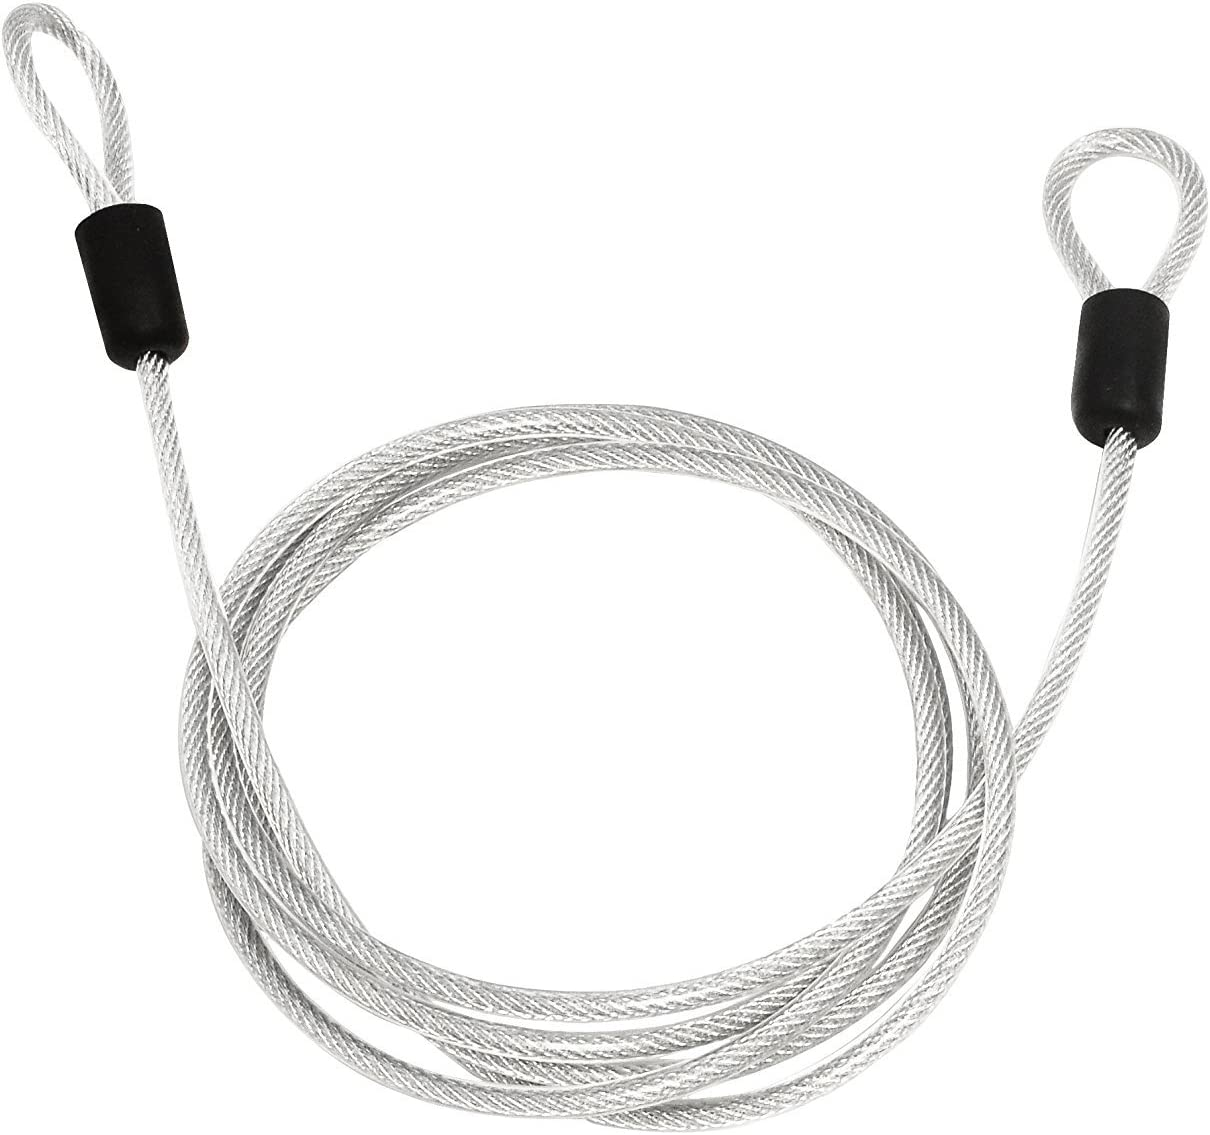 Bicycle Lock Flexible Security Cable Outdoor Sport Travel Wire Portable